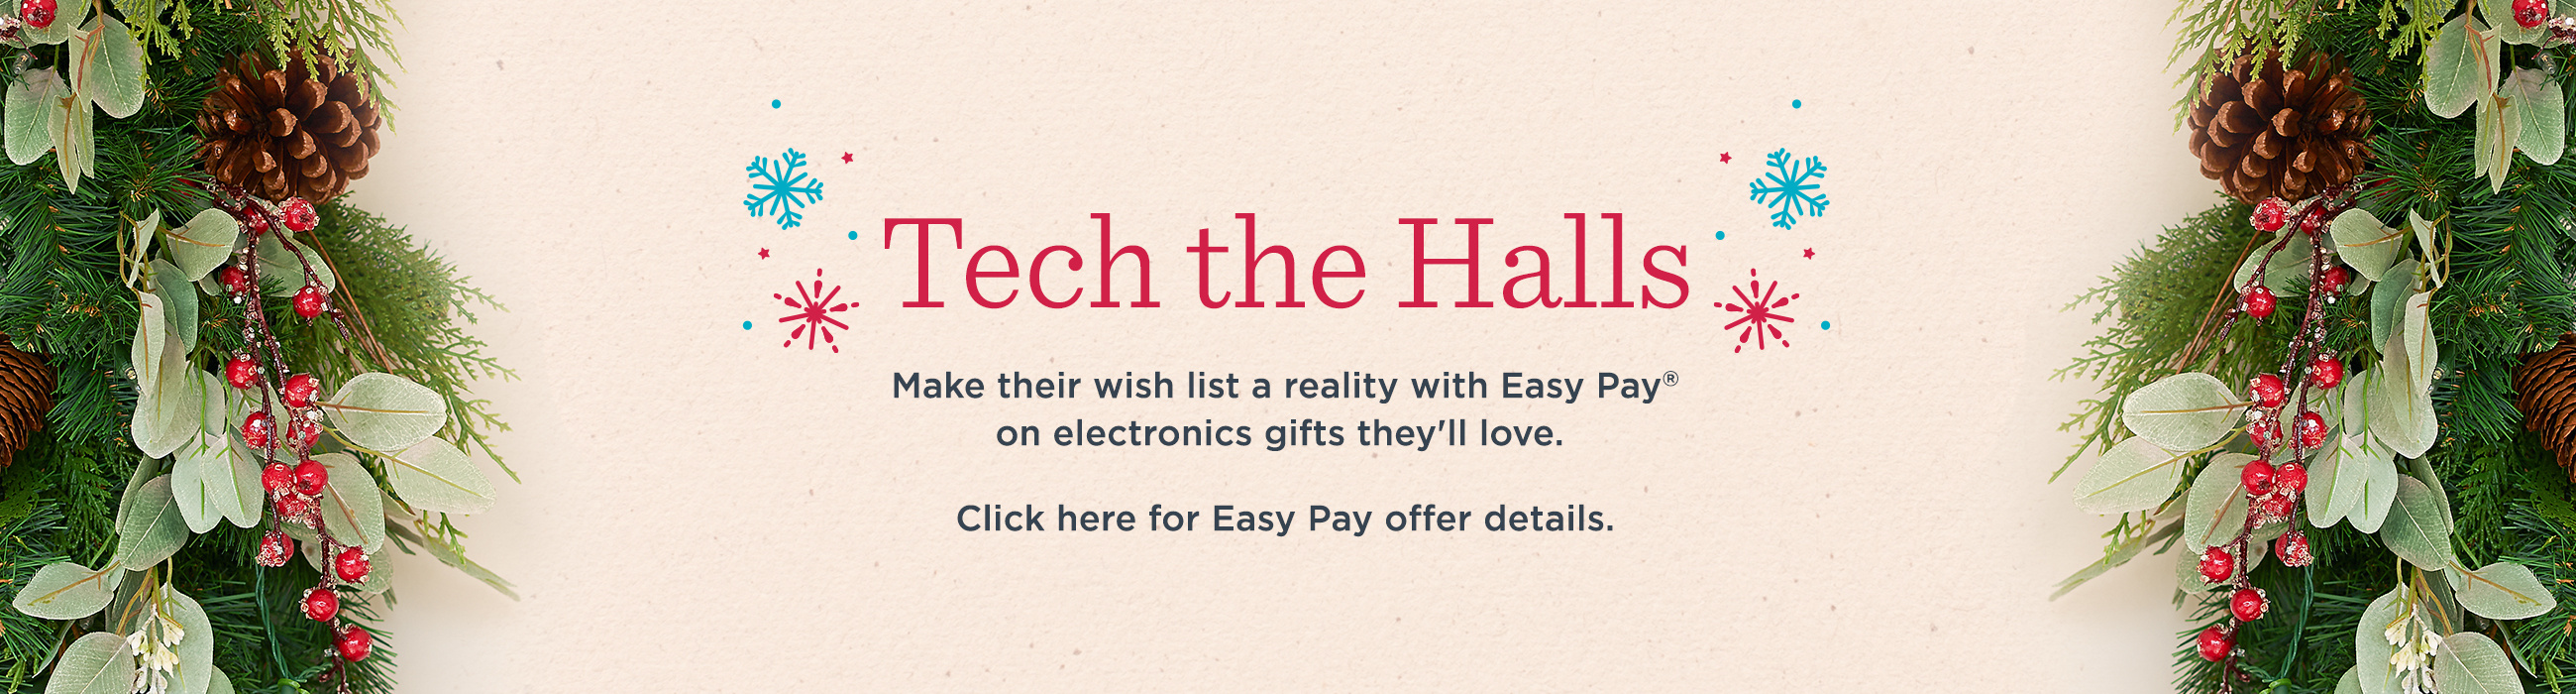 Tech the Halls  Make their wish list a reality with Easy Pay® on electronics gifts they'll love.  Click here for Easy Pay offer details.